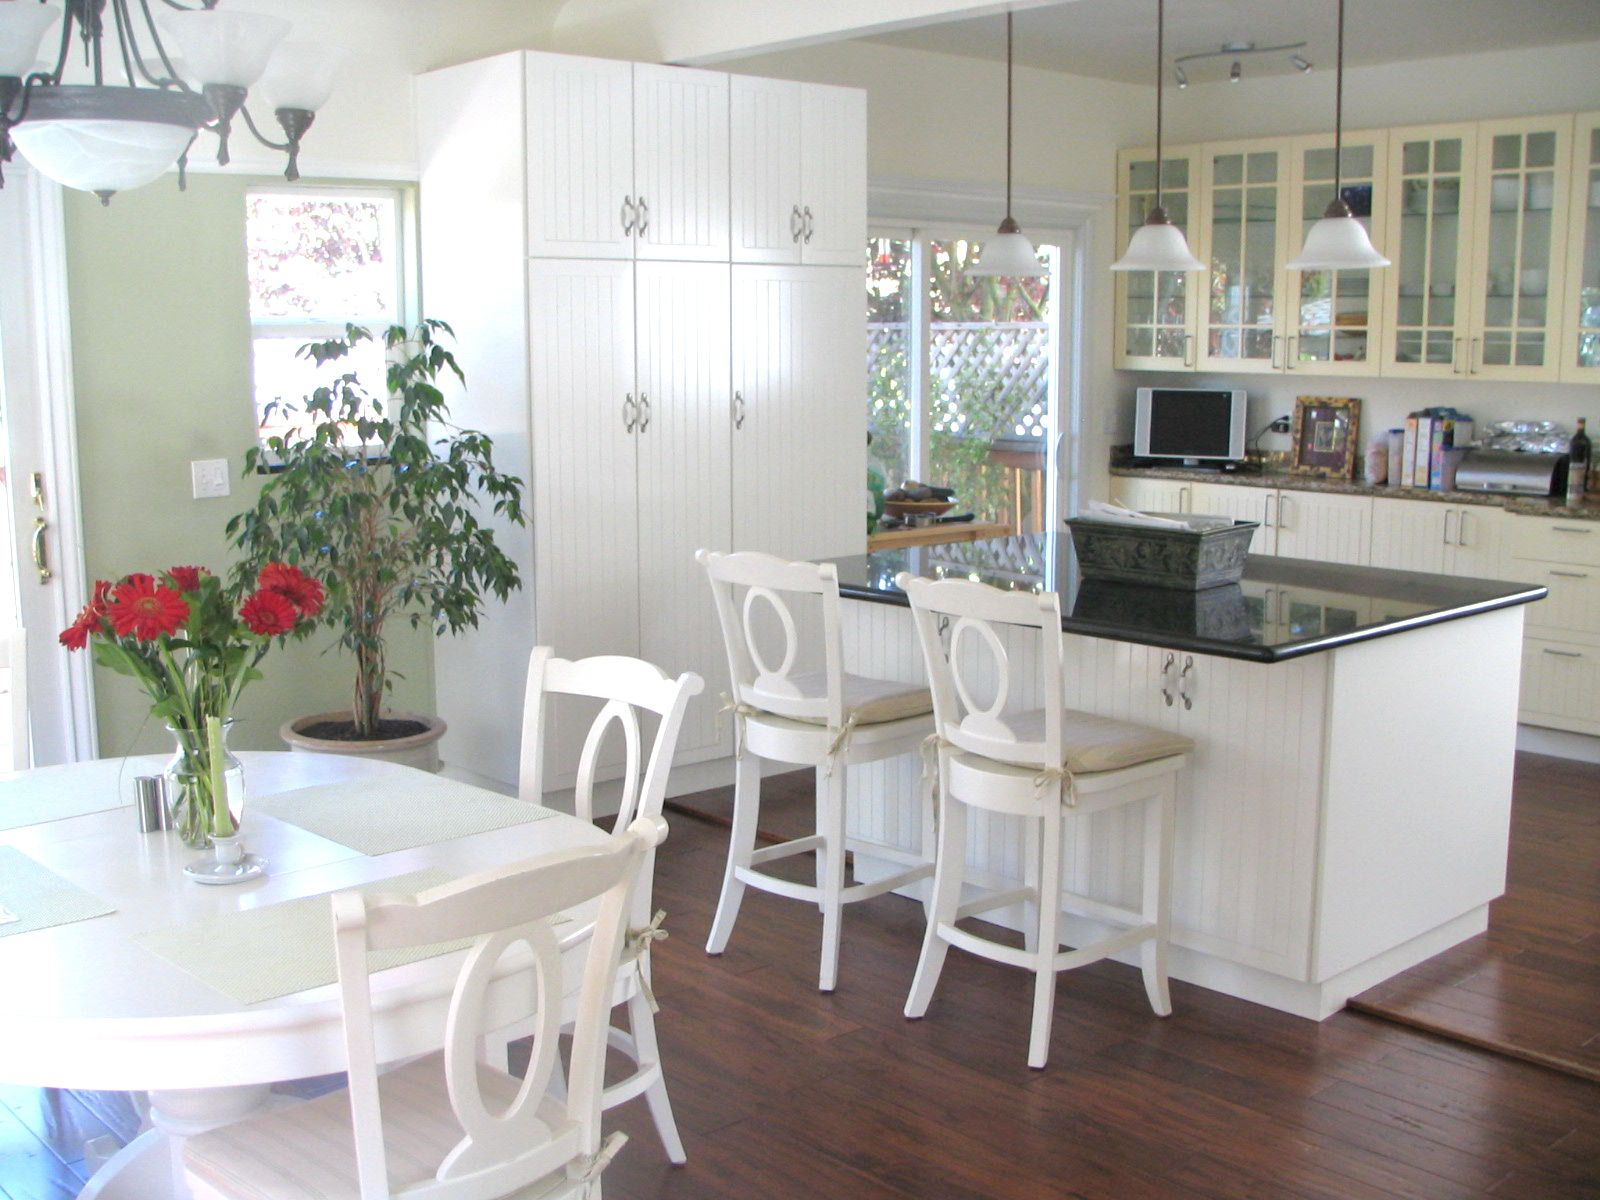 Ikea Kitchen Remodel Pictures  House Remodel  Cultivate Your Custom Ikea Kitchen Remodel Inspiration Design